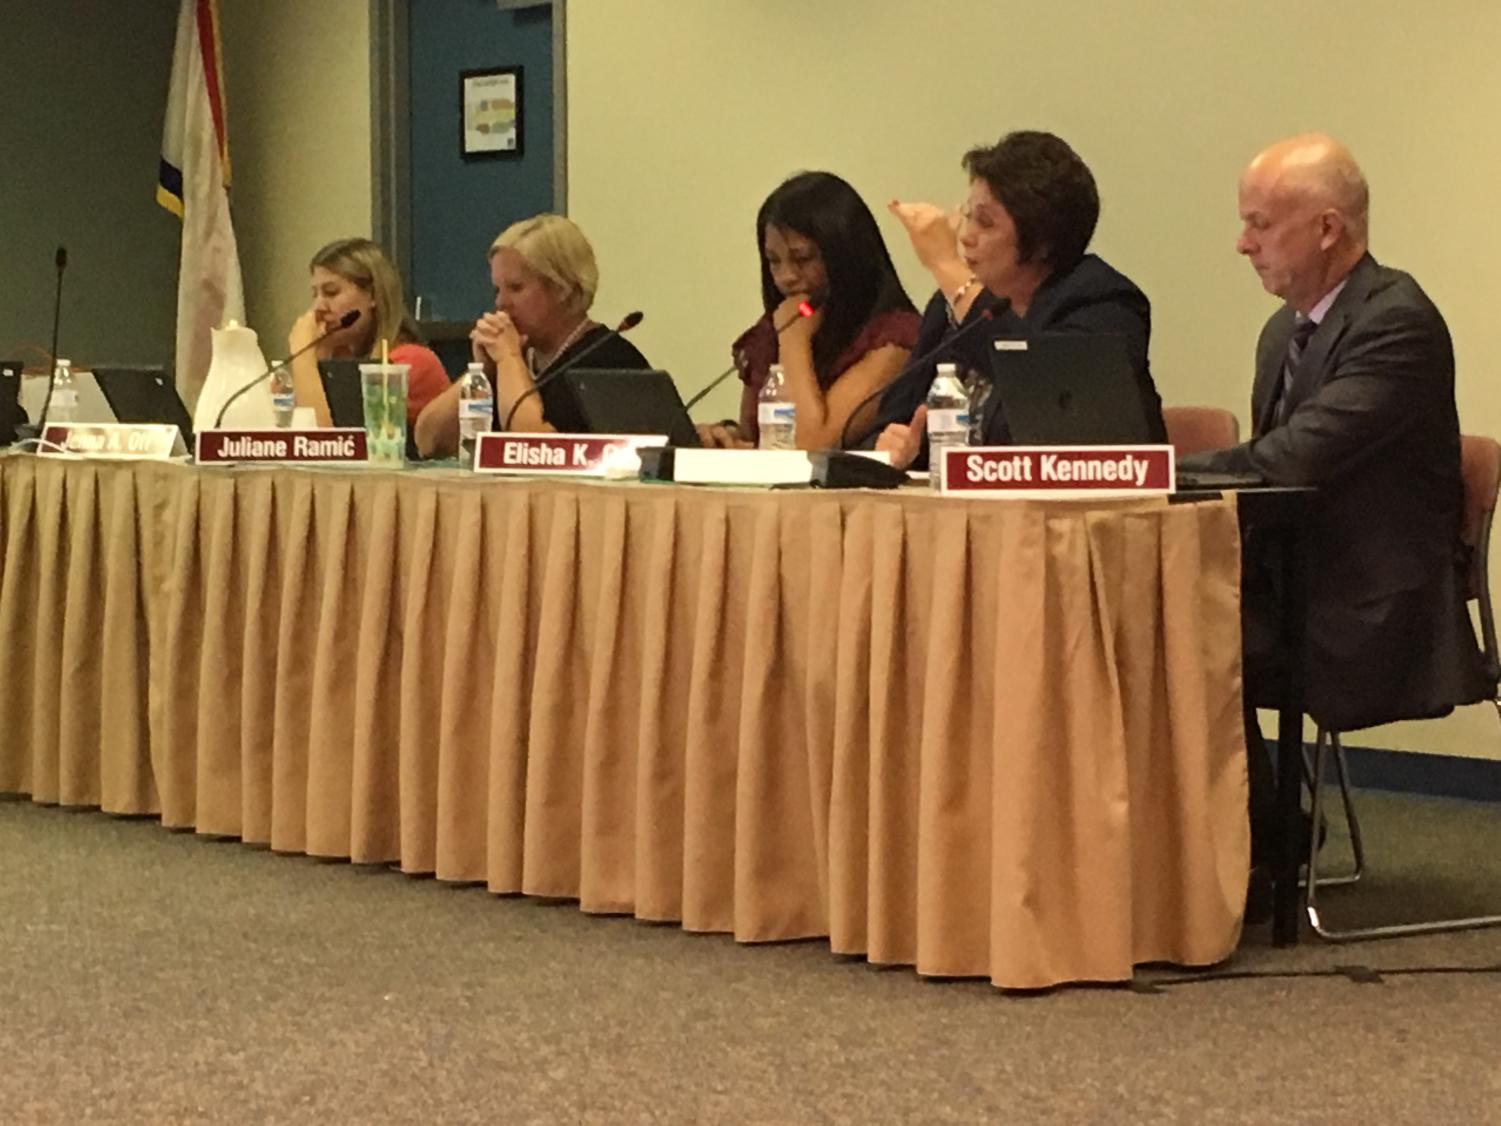 NPSB: The North Penn School Board discussed the implementation of full day kindergarten Tuesday evening.